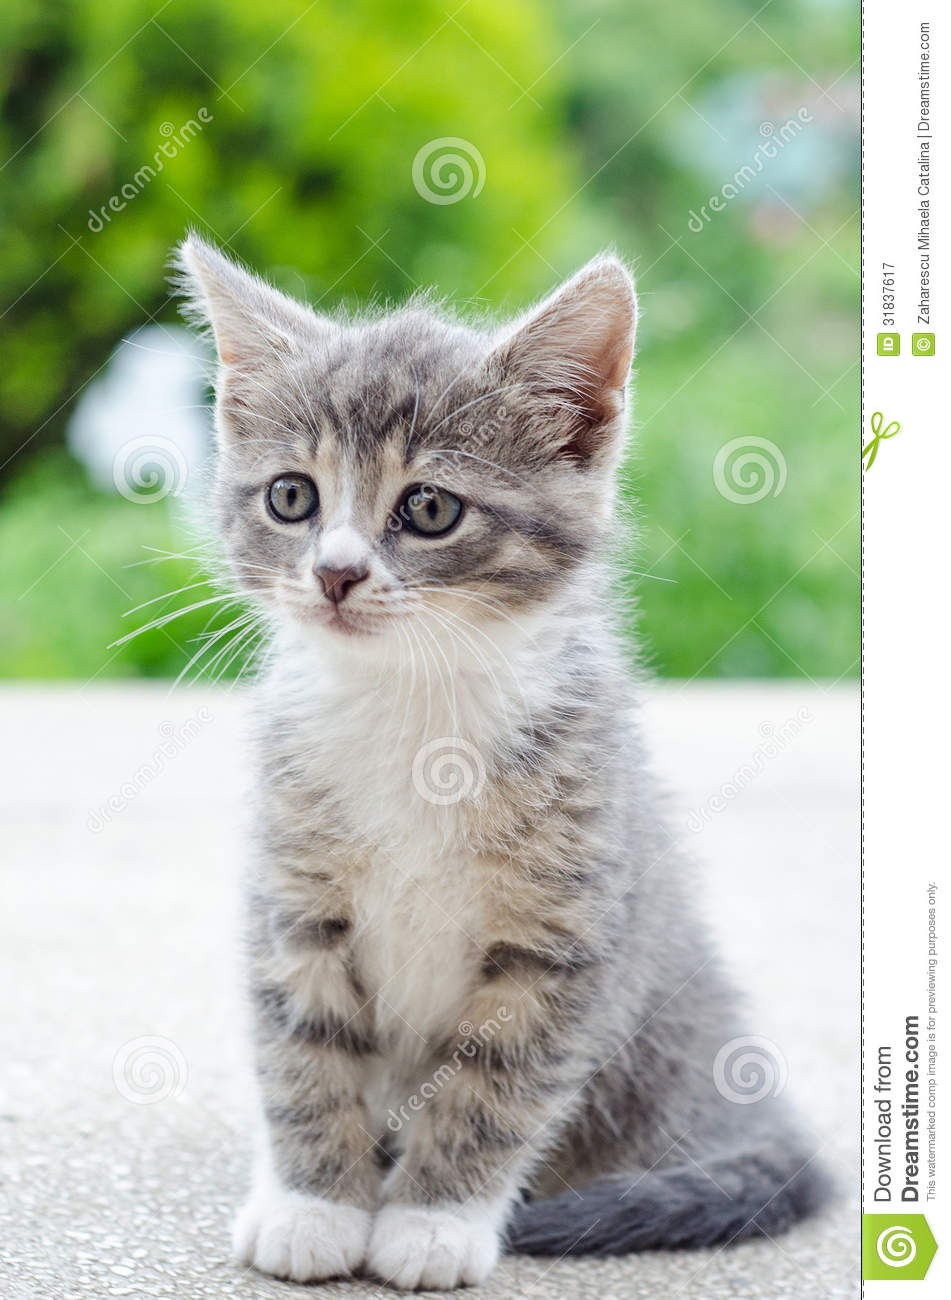 Cute Tabby Kitten Royalty Free Stock graphy Image